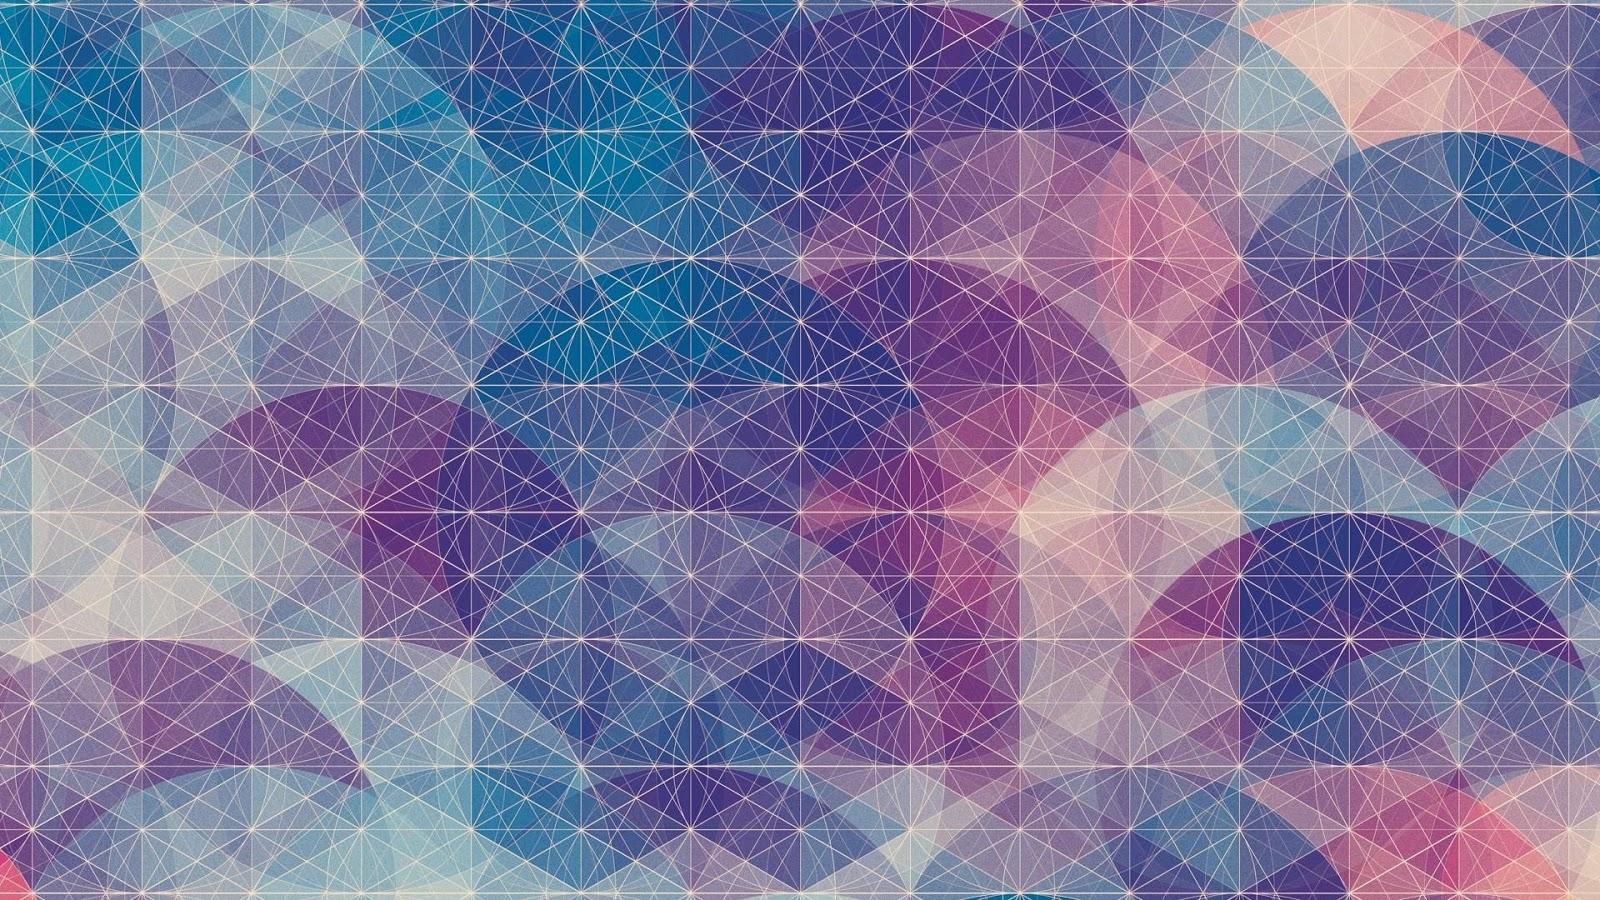 HD Geometric Wallpaper   Android Apps on Google Play 1600x900